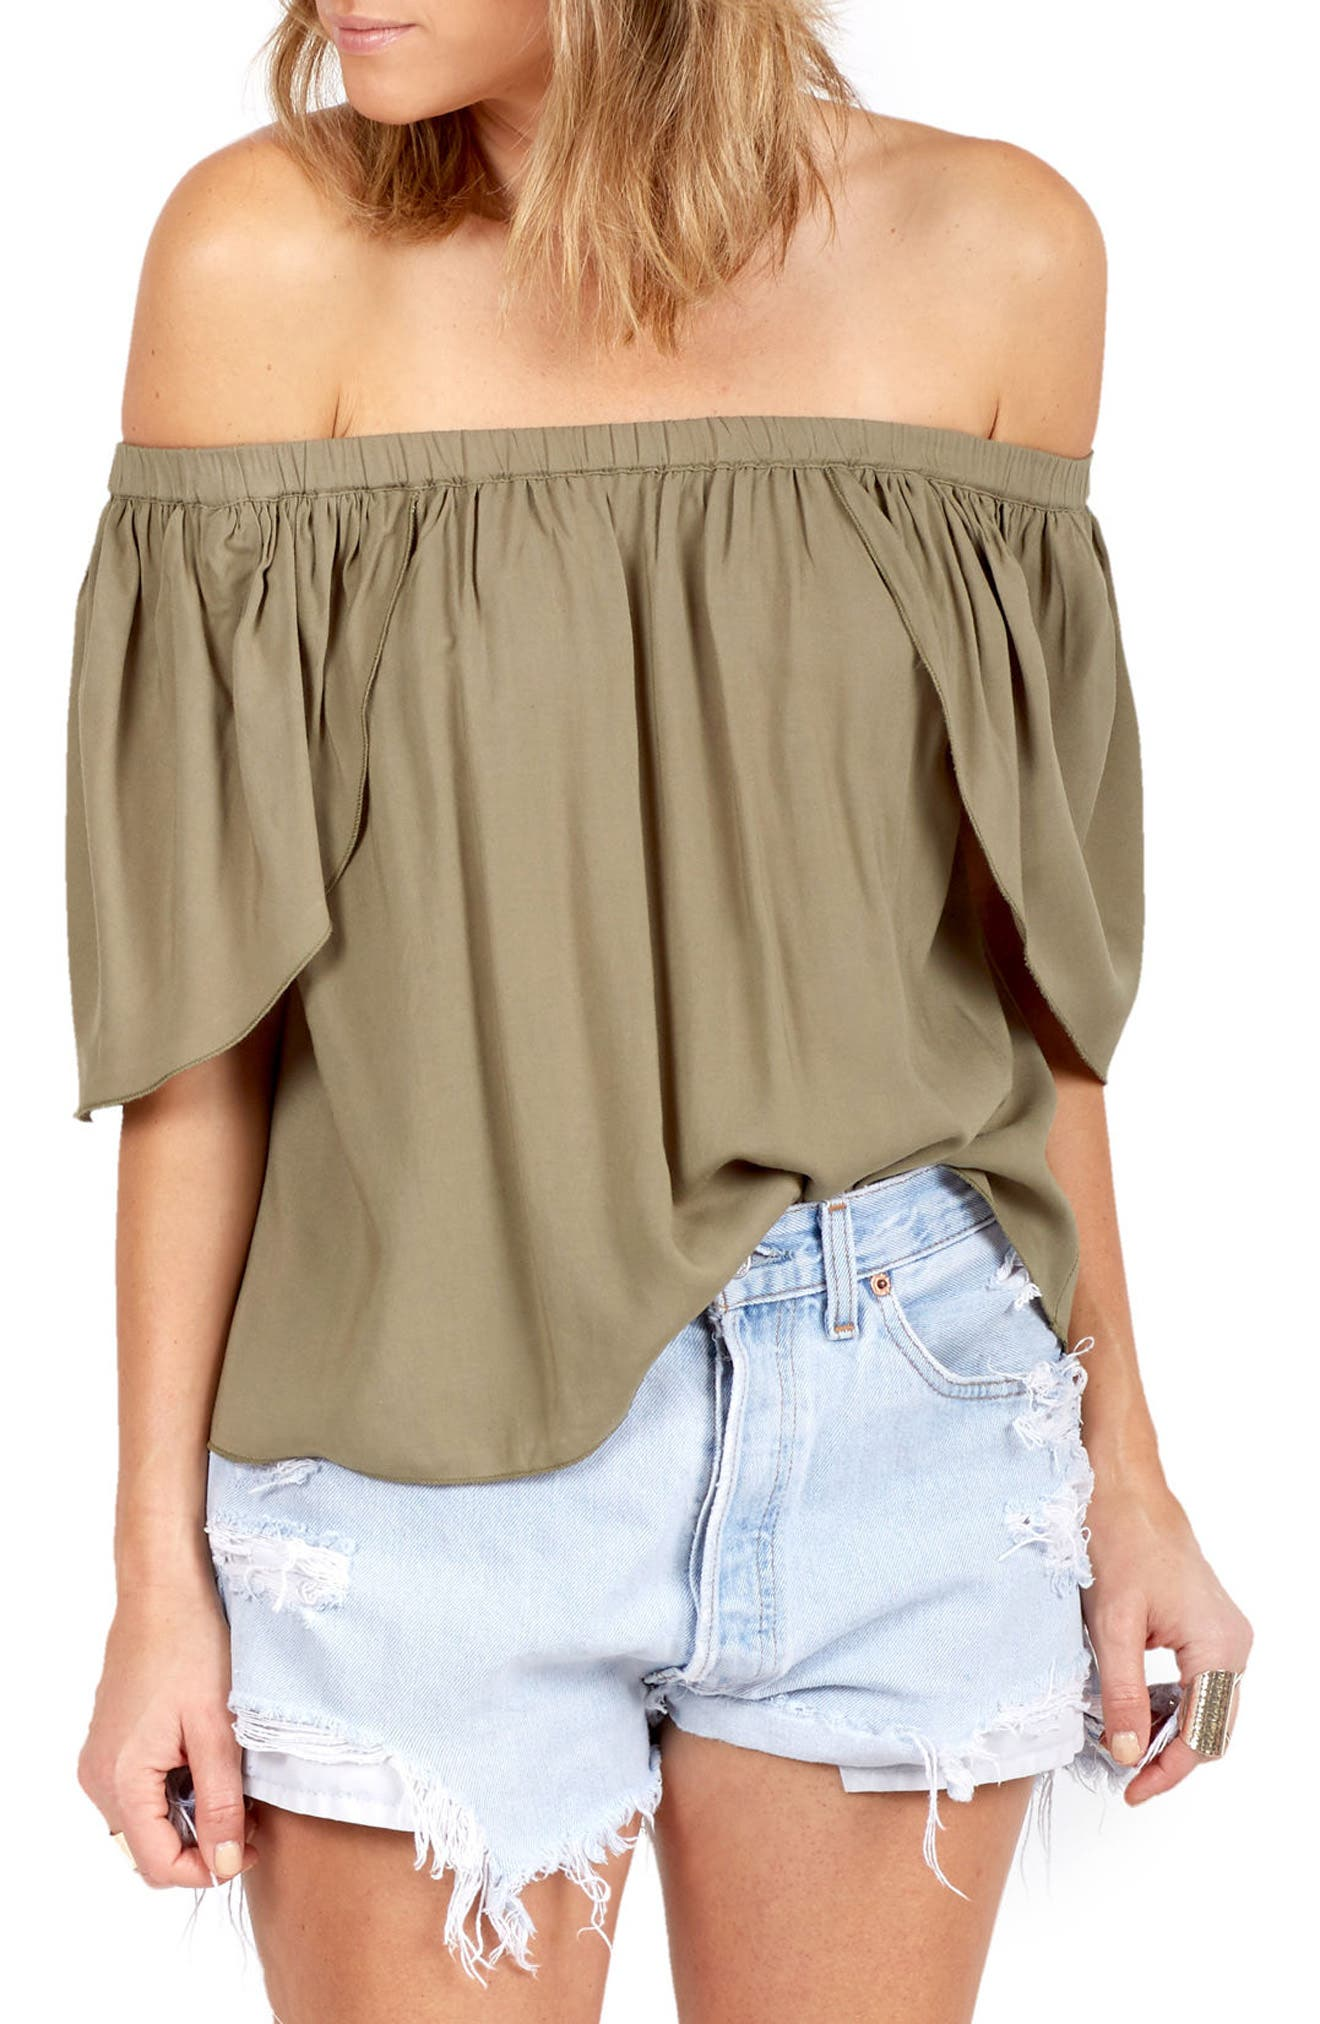 DELACY Allegra Off the Shoulder Top